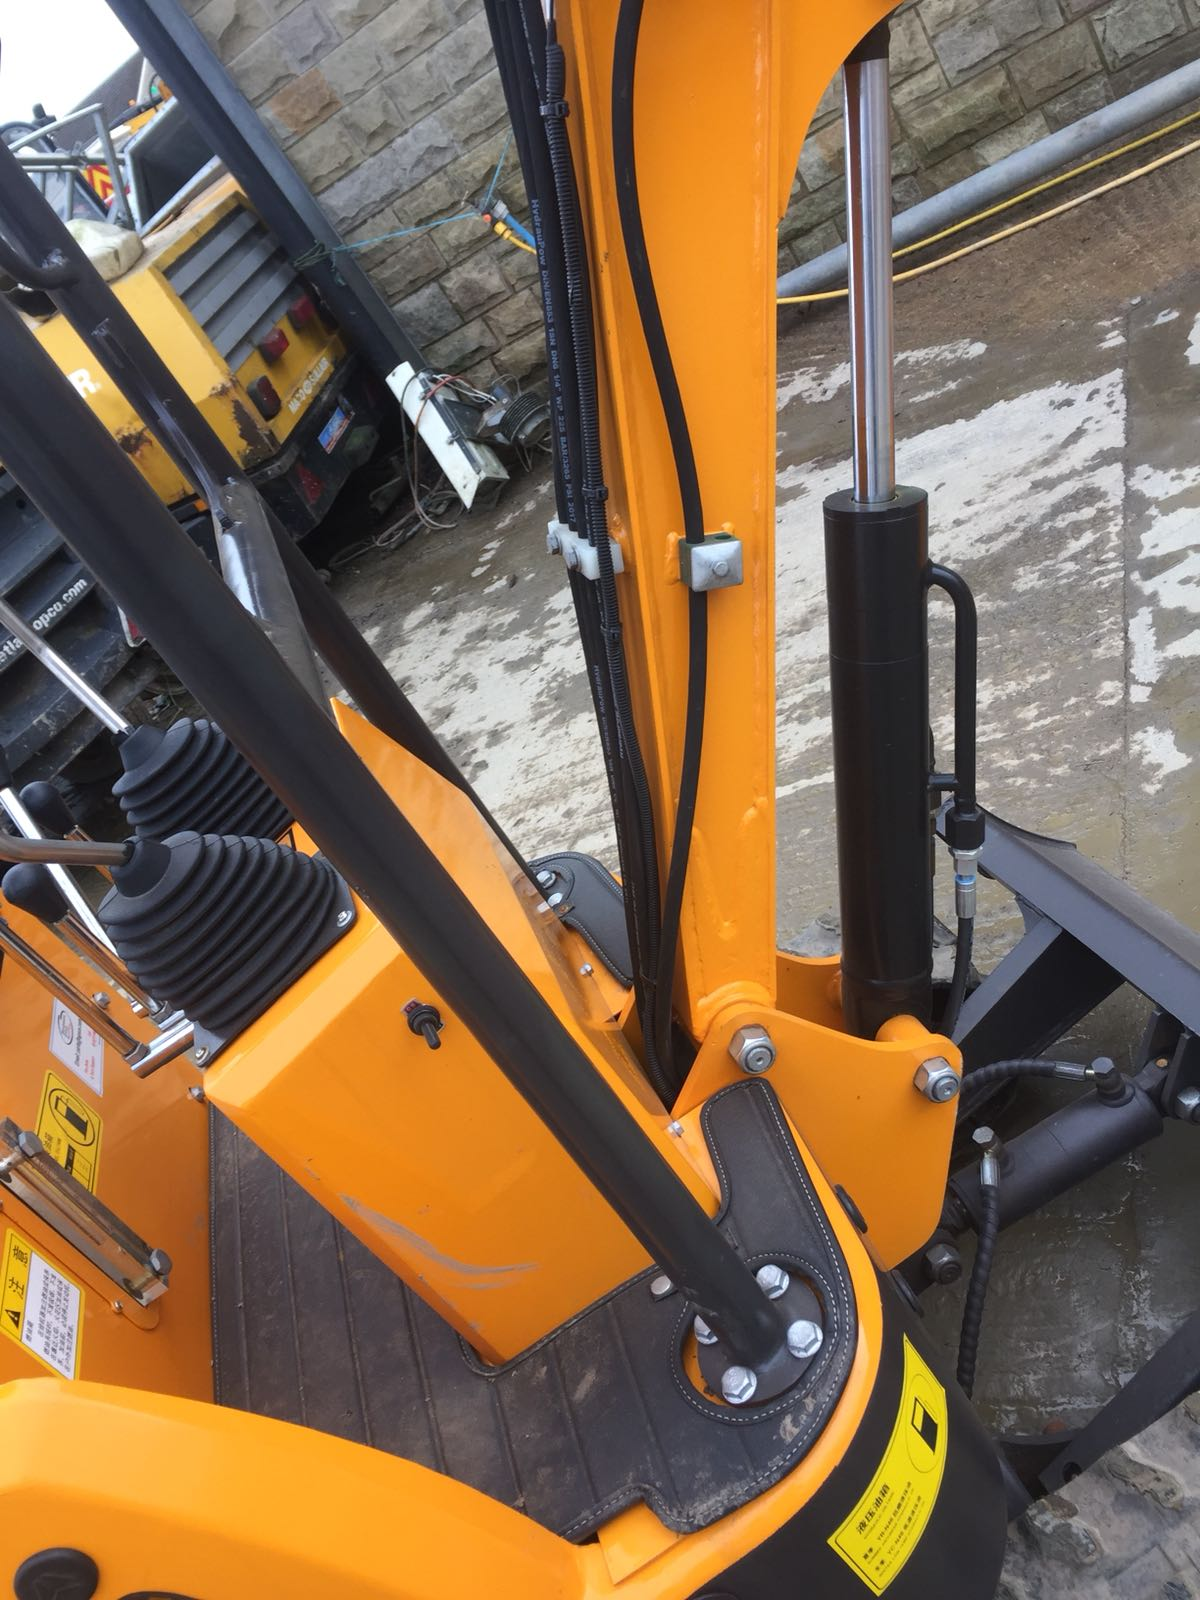 Lot 63 - BRAND NEW MINI TRACKED EXCAVATOR MICRO RHINOCEROS XN08 *PLUS VAT*